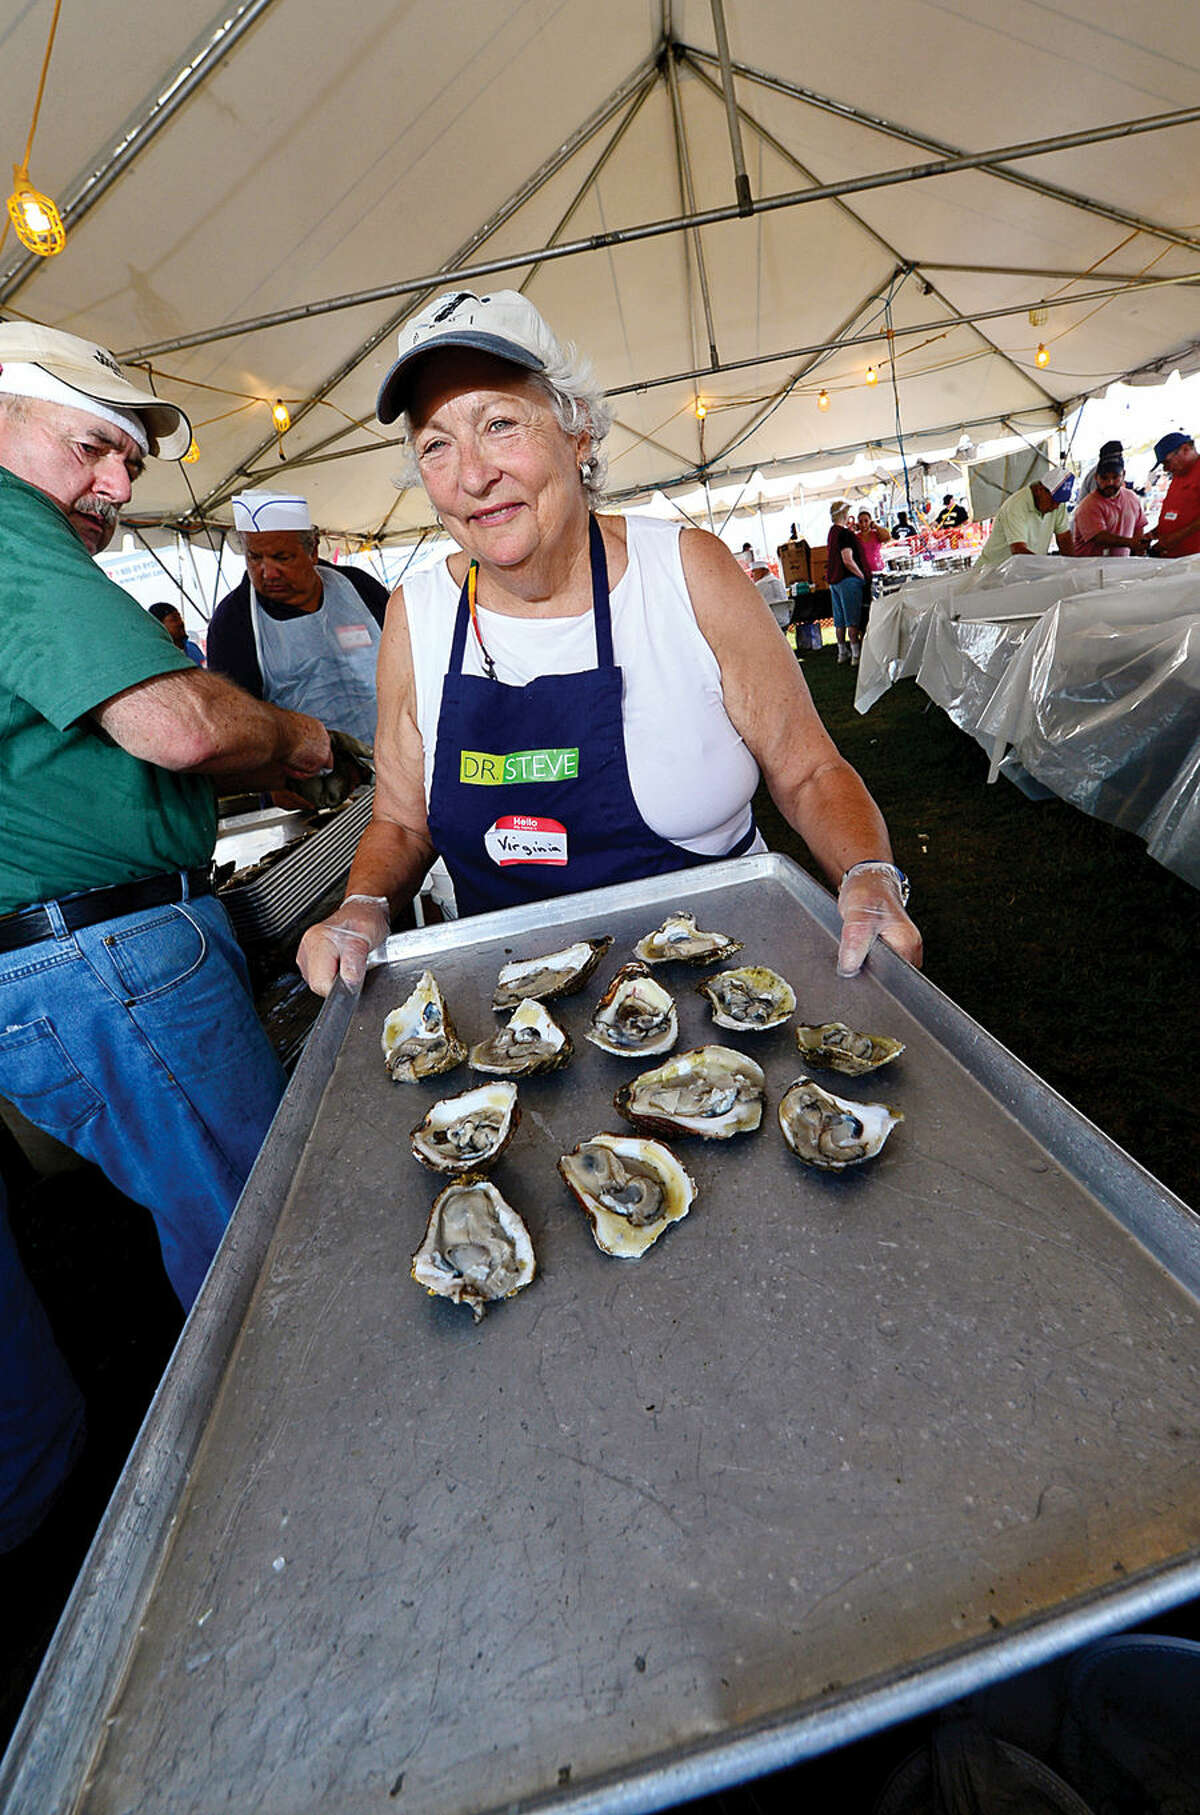 Hour photo / Erik Trautmann Virginia Lockwood serves up oysters from the Flotilla 72 Coast Guard Auxilliary tent during the Norwalk Seaport Association's 37th annual Oyster Festival at Veteran's Park Saturday.